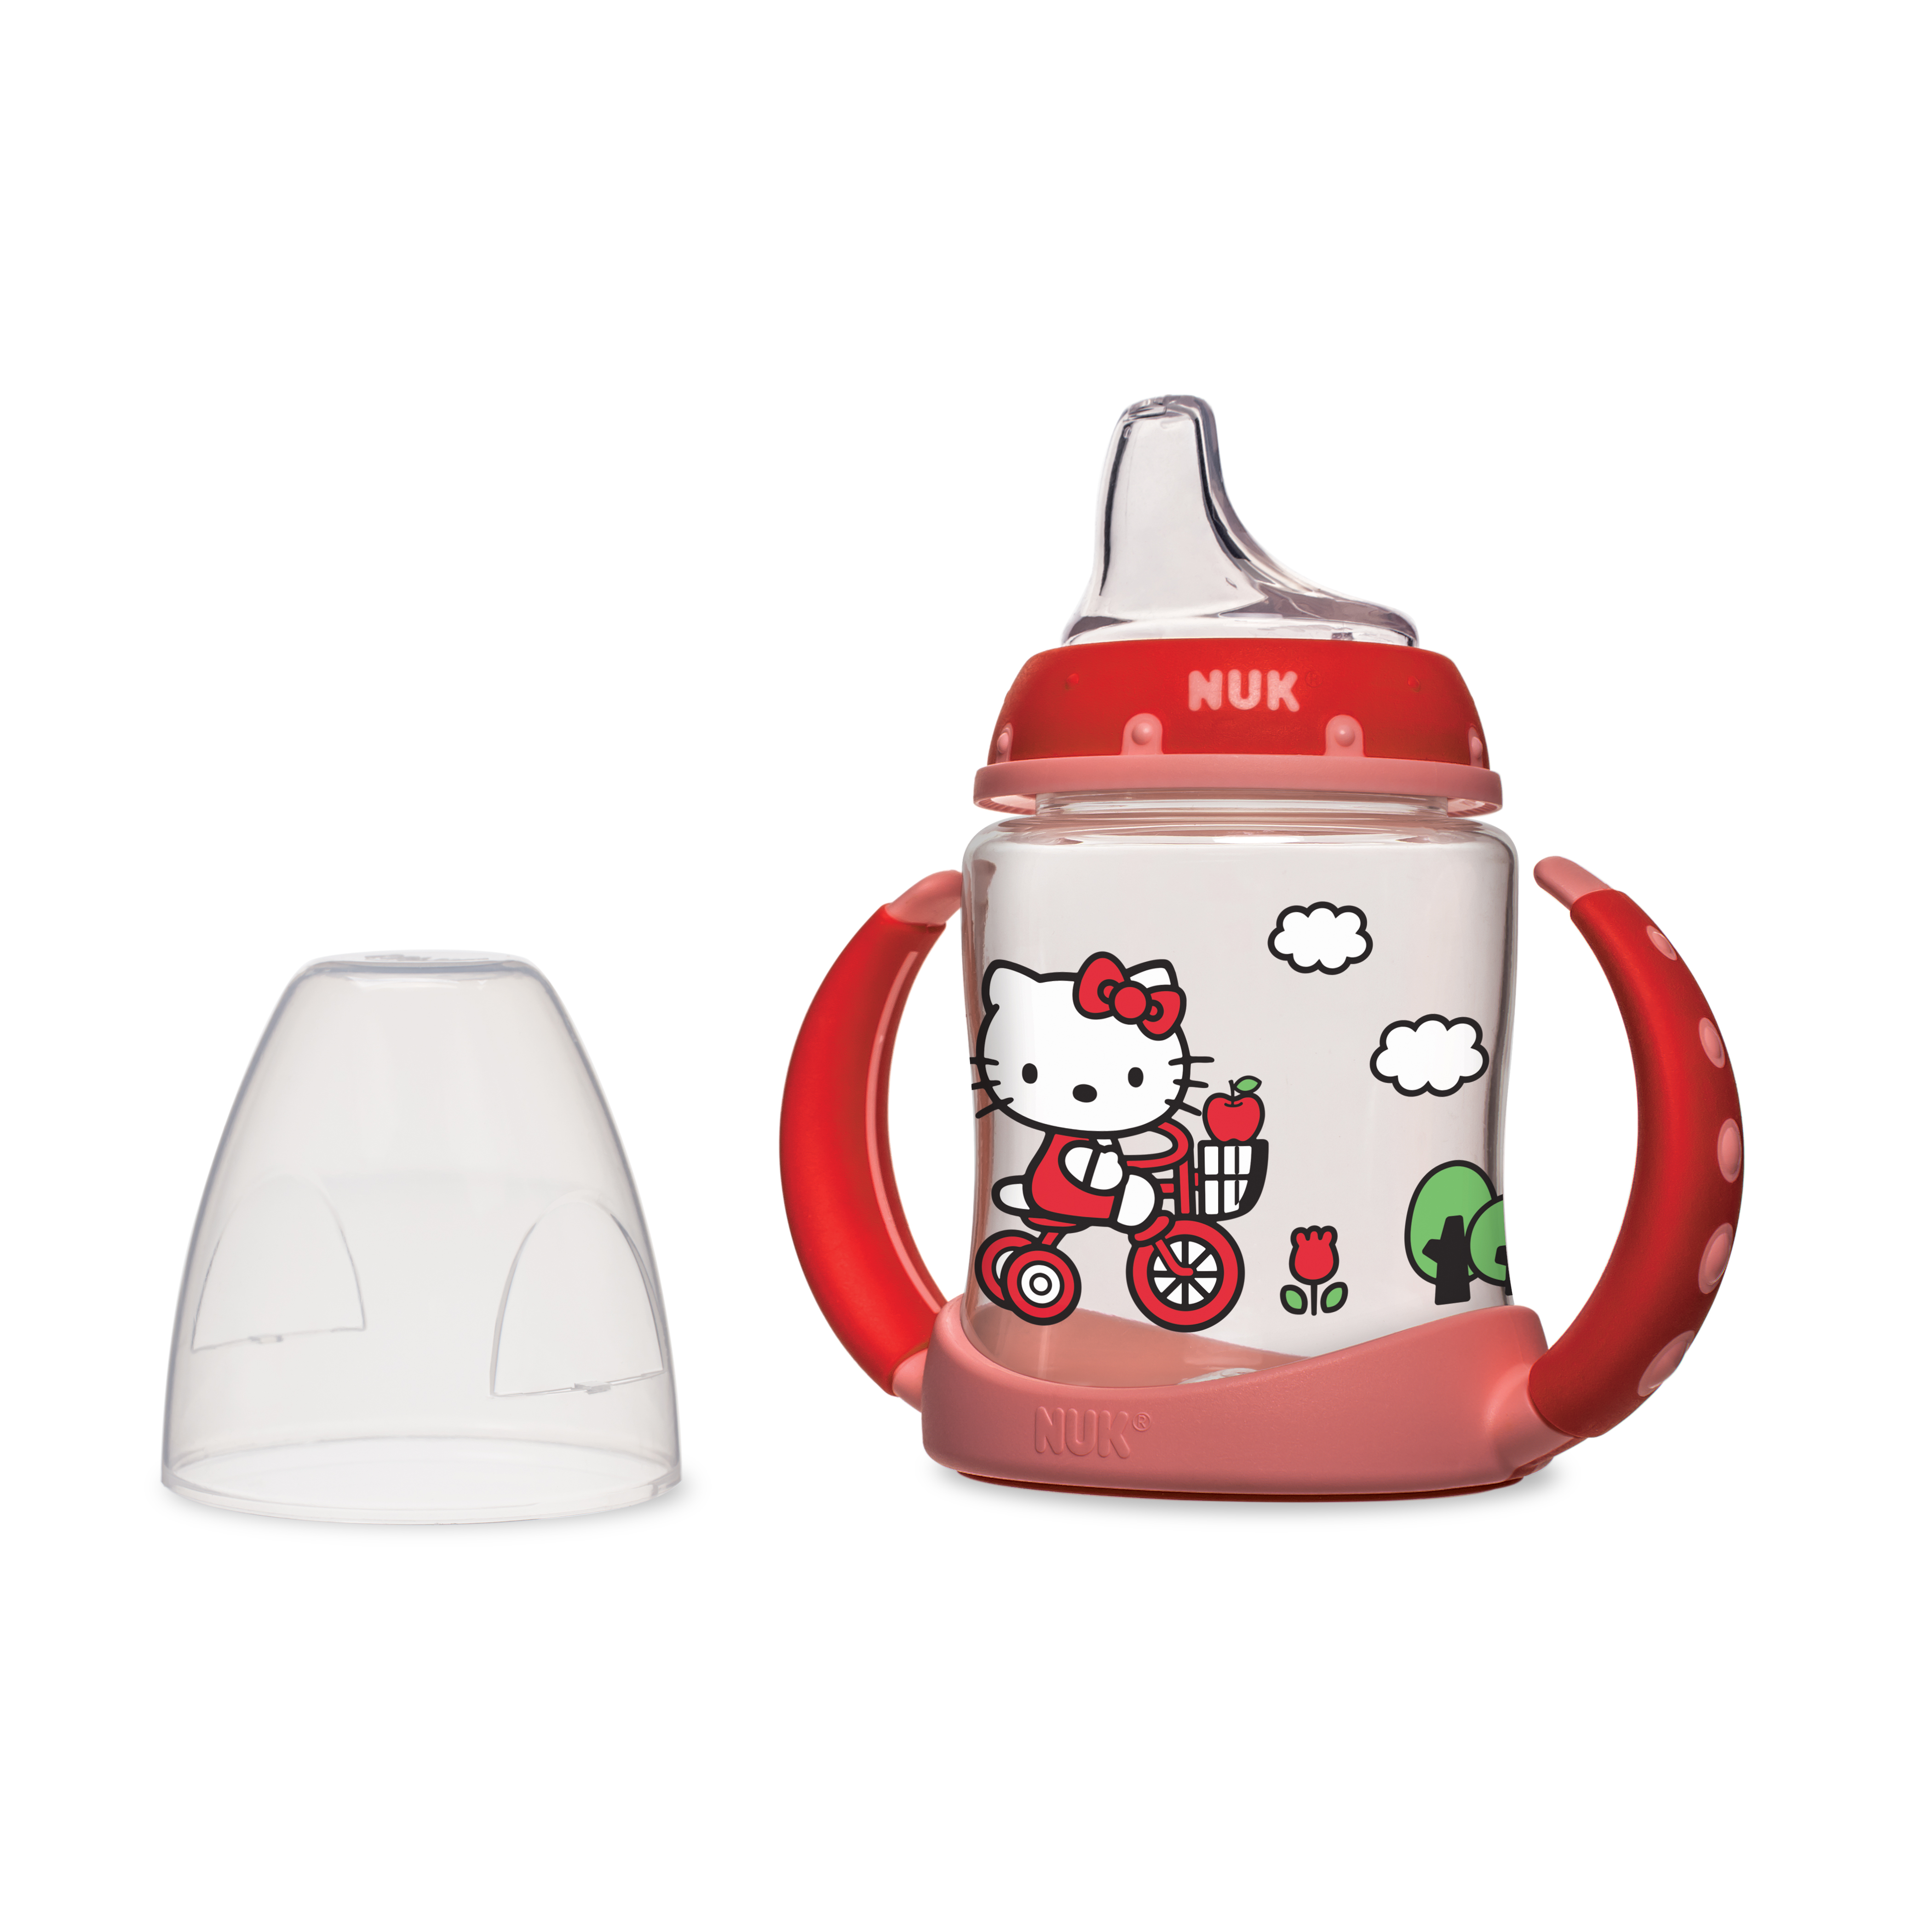 NUK Hello Kitty 6m+ Learner Cup, 5 oz